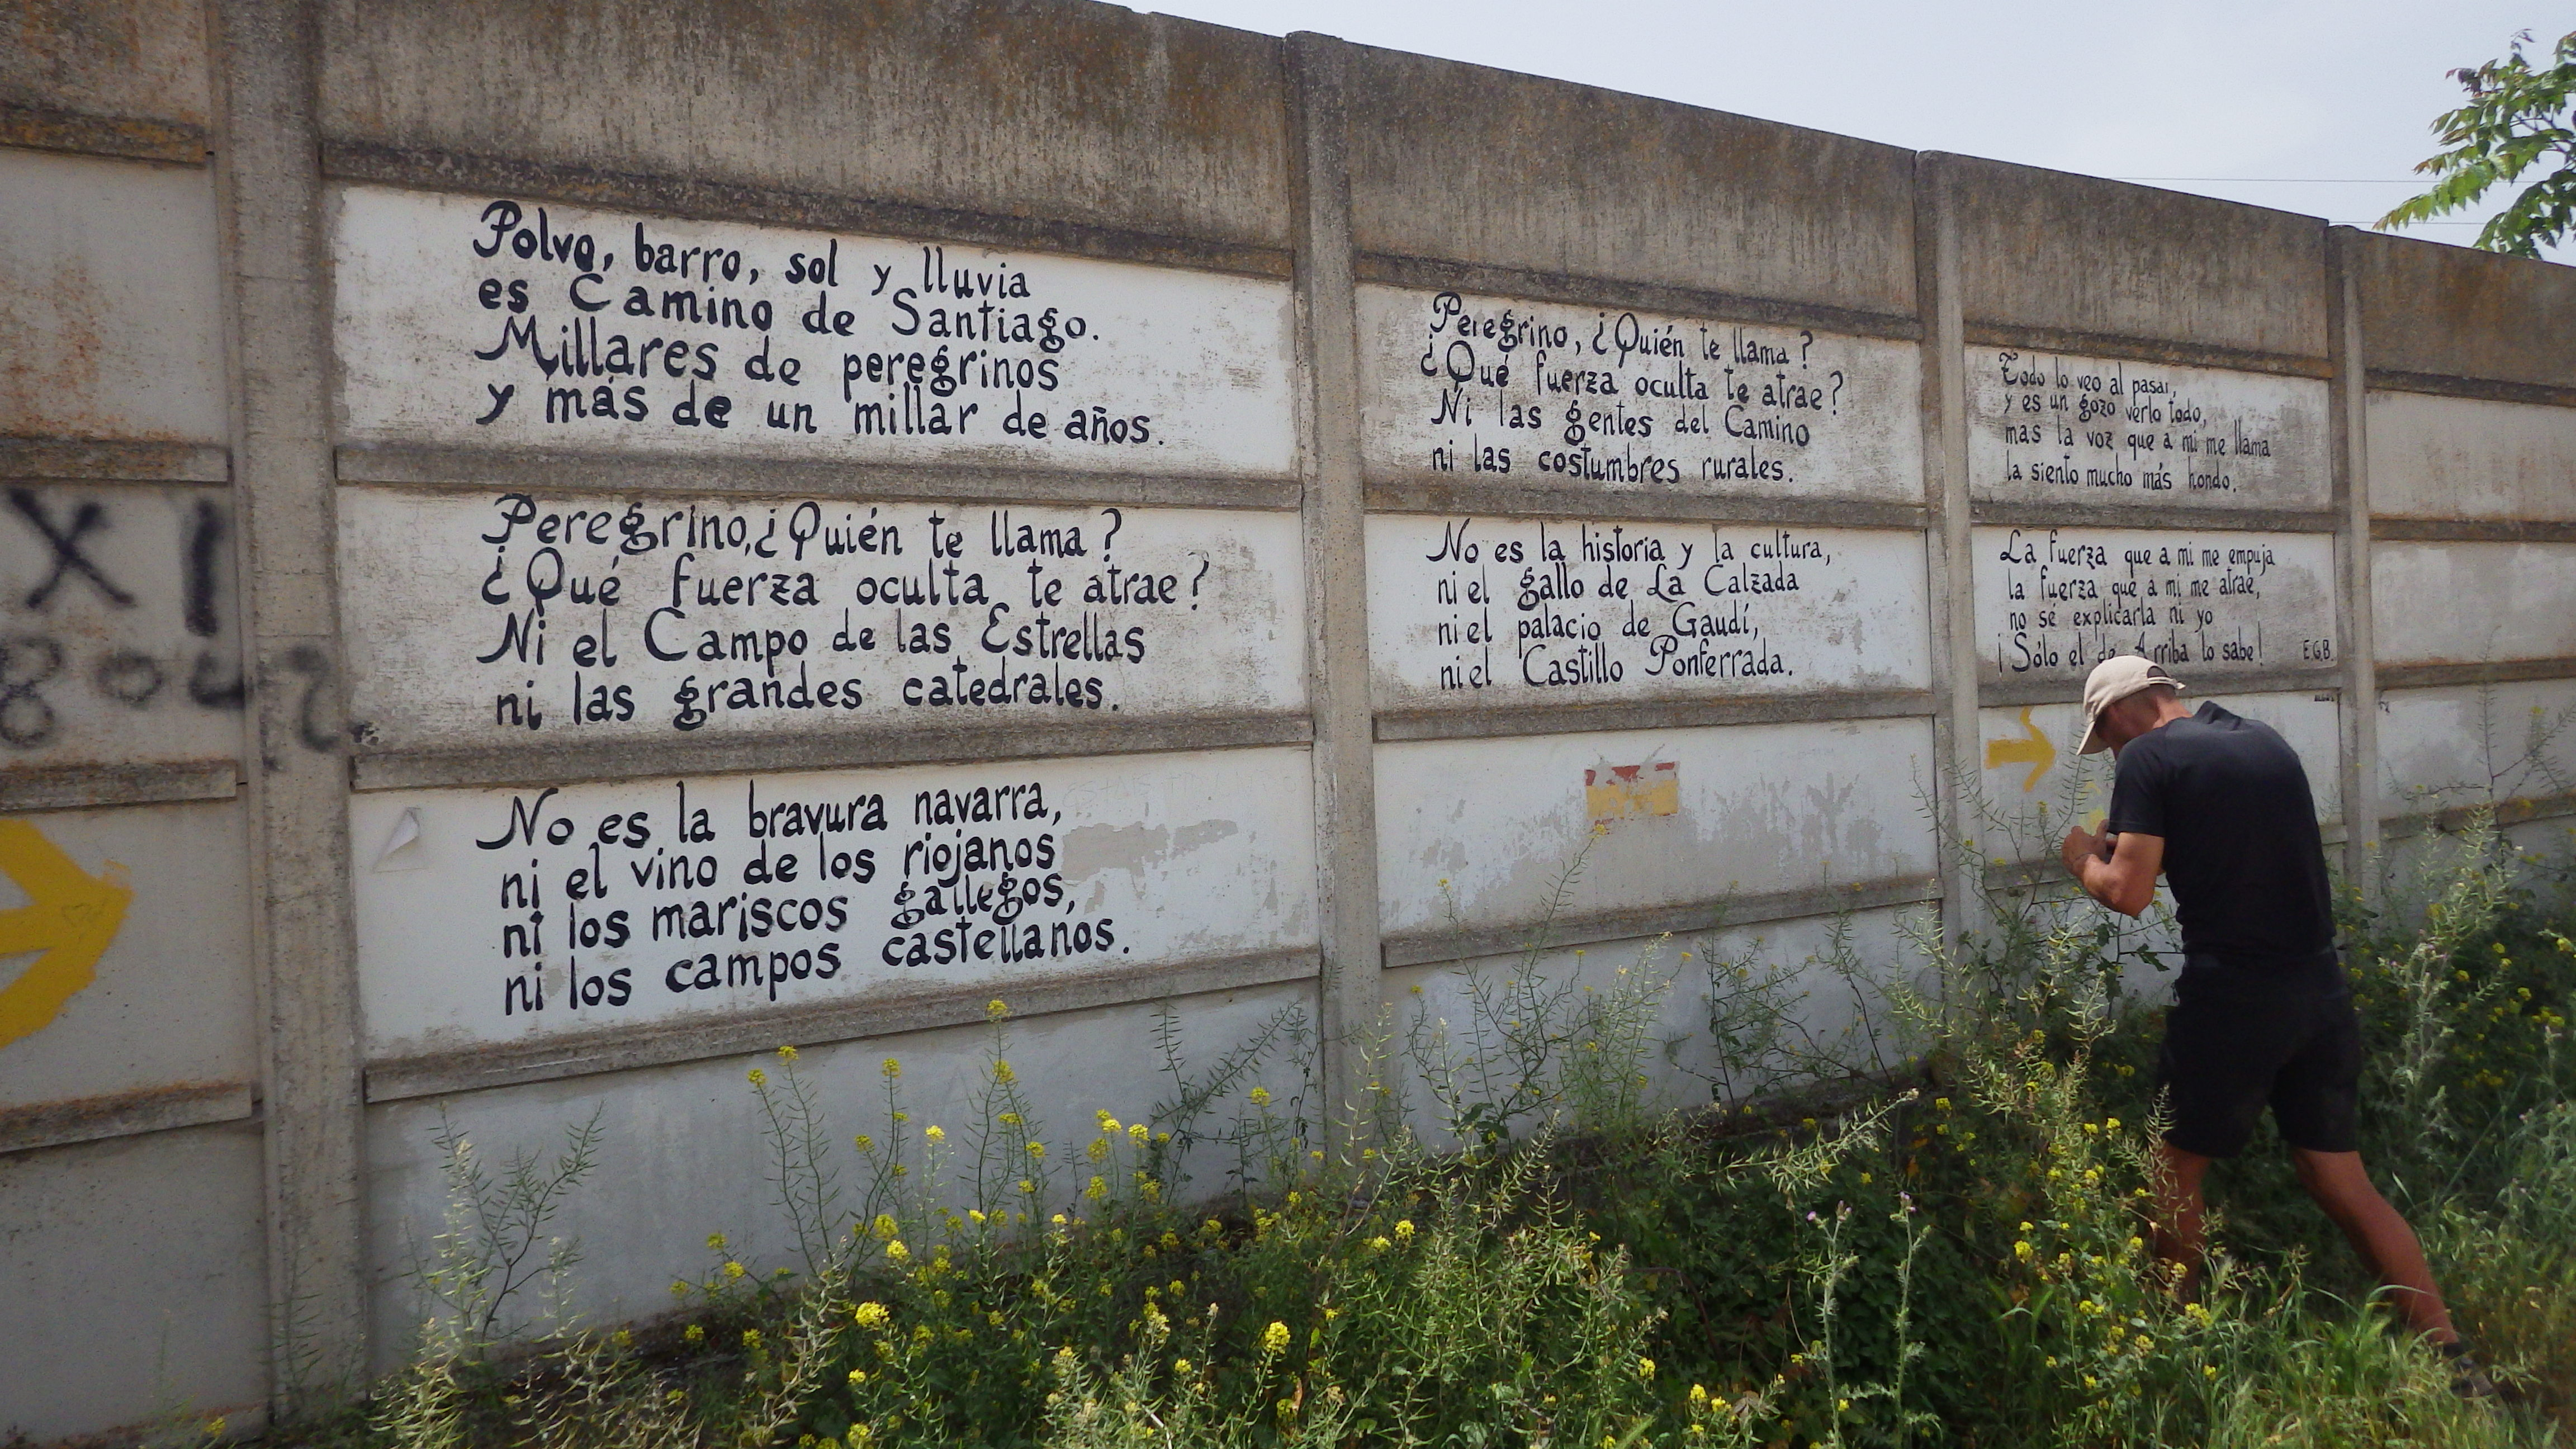 Notes from pilgrims on the Camino